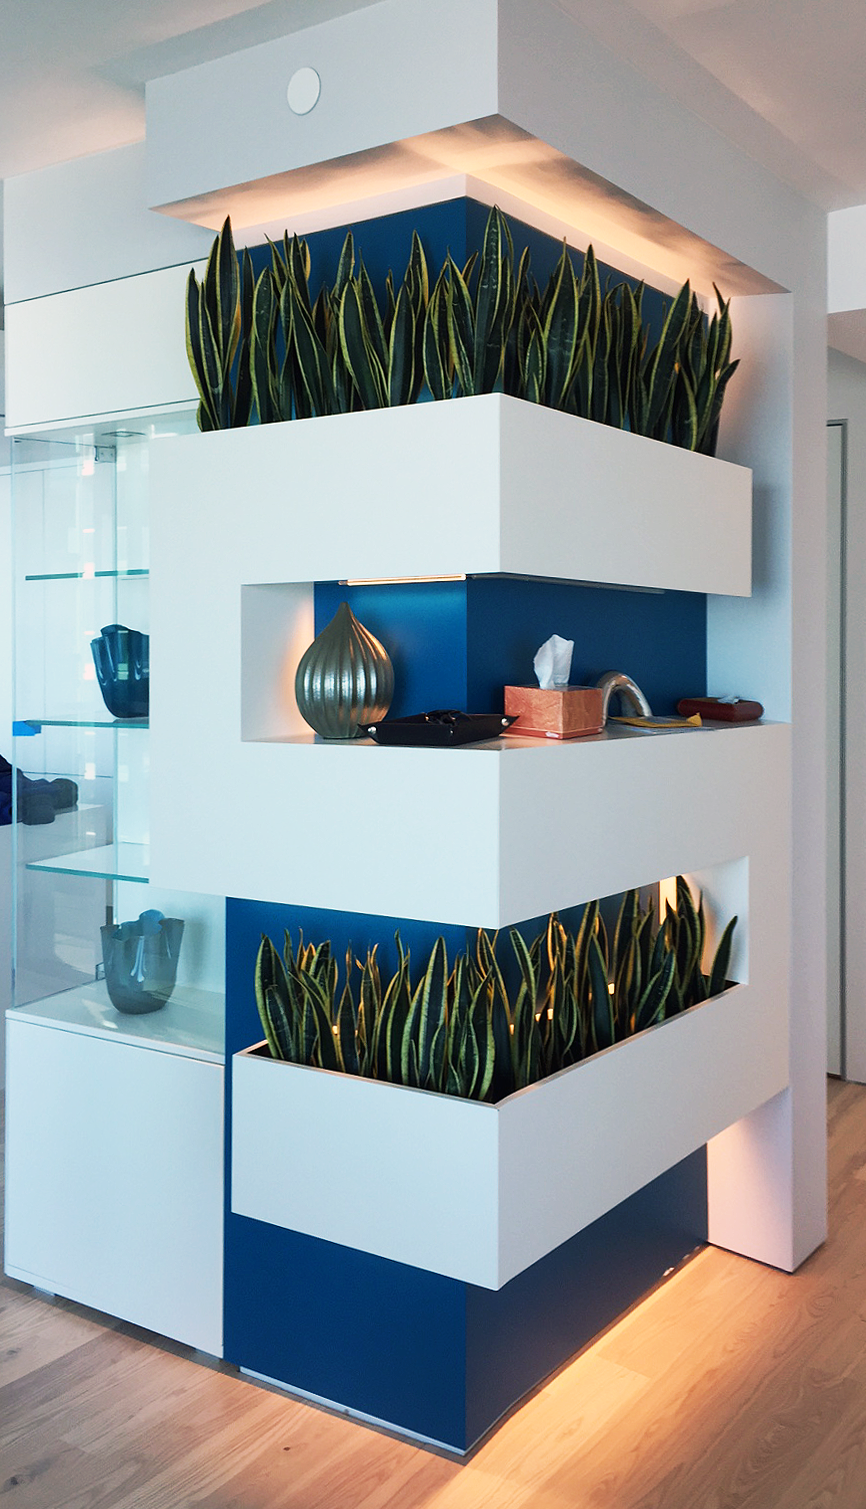 Planter wall in a corner with a blue panel on the back